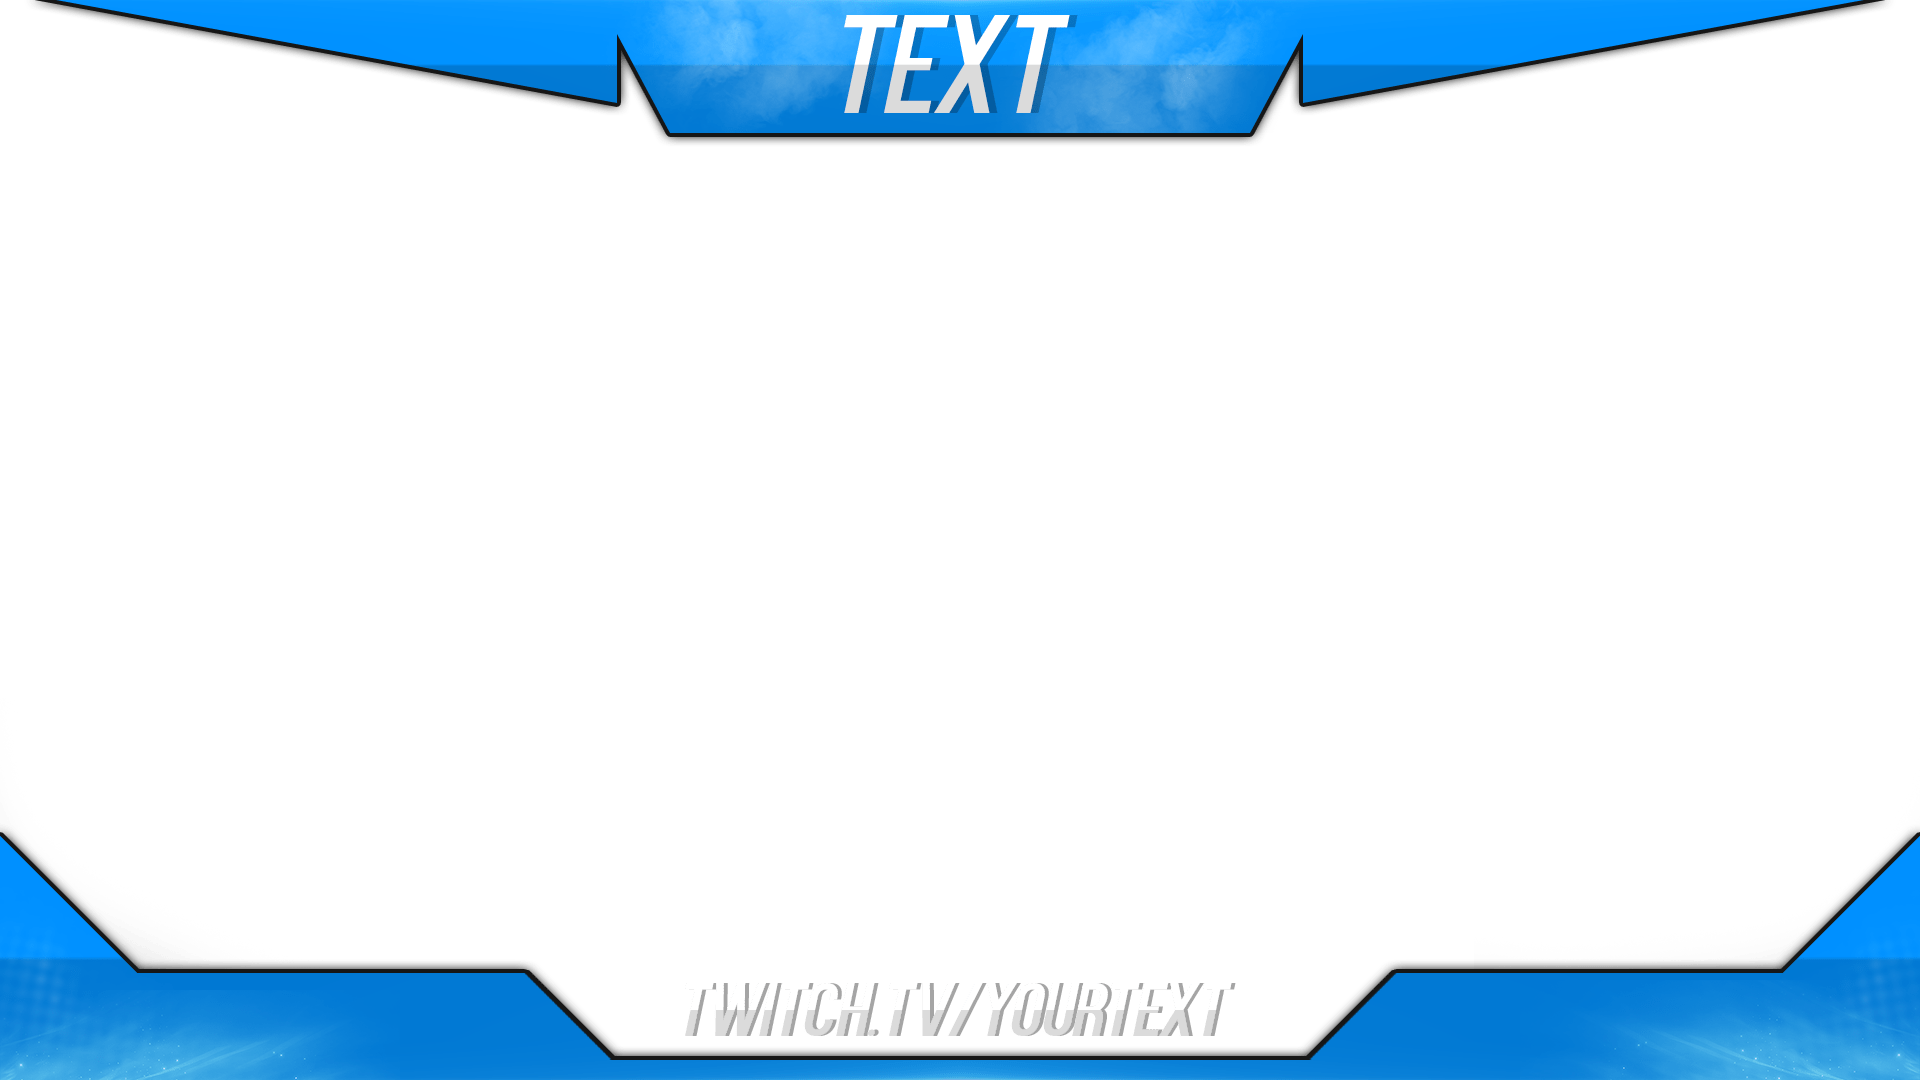 Twitch Overlay Template Psd Twitch stuff Pinterest